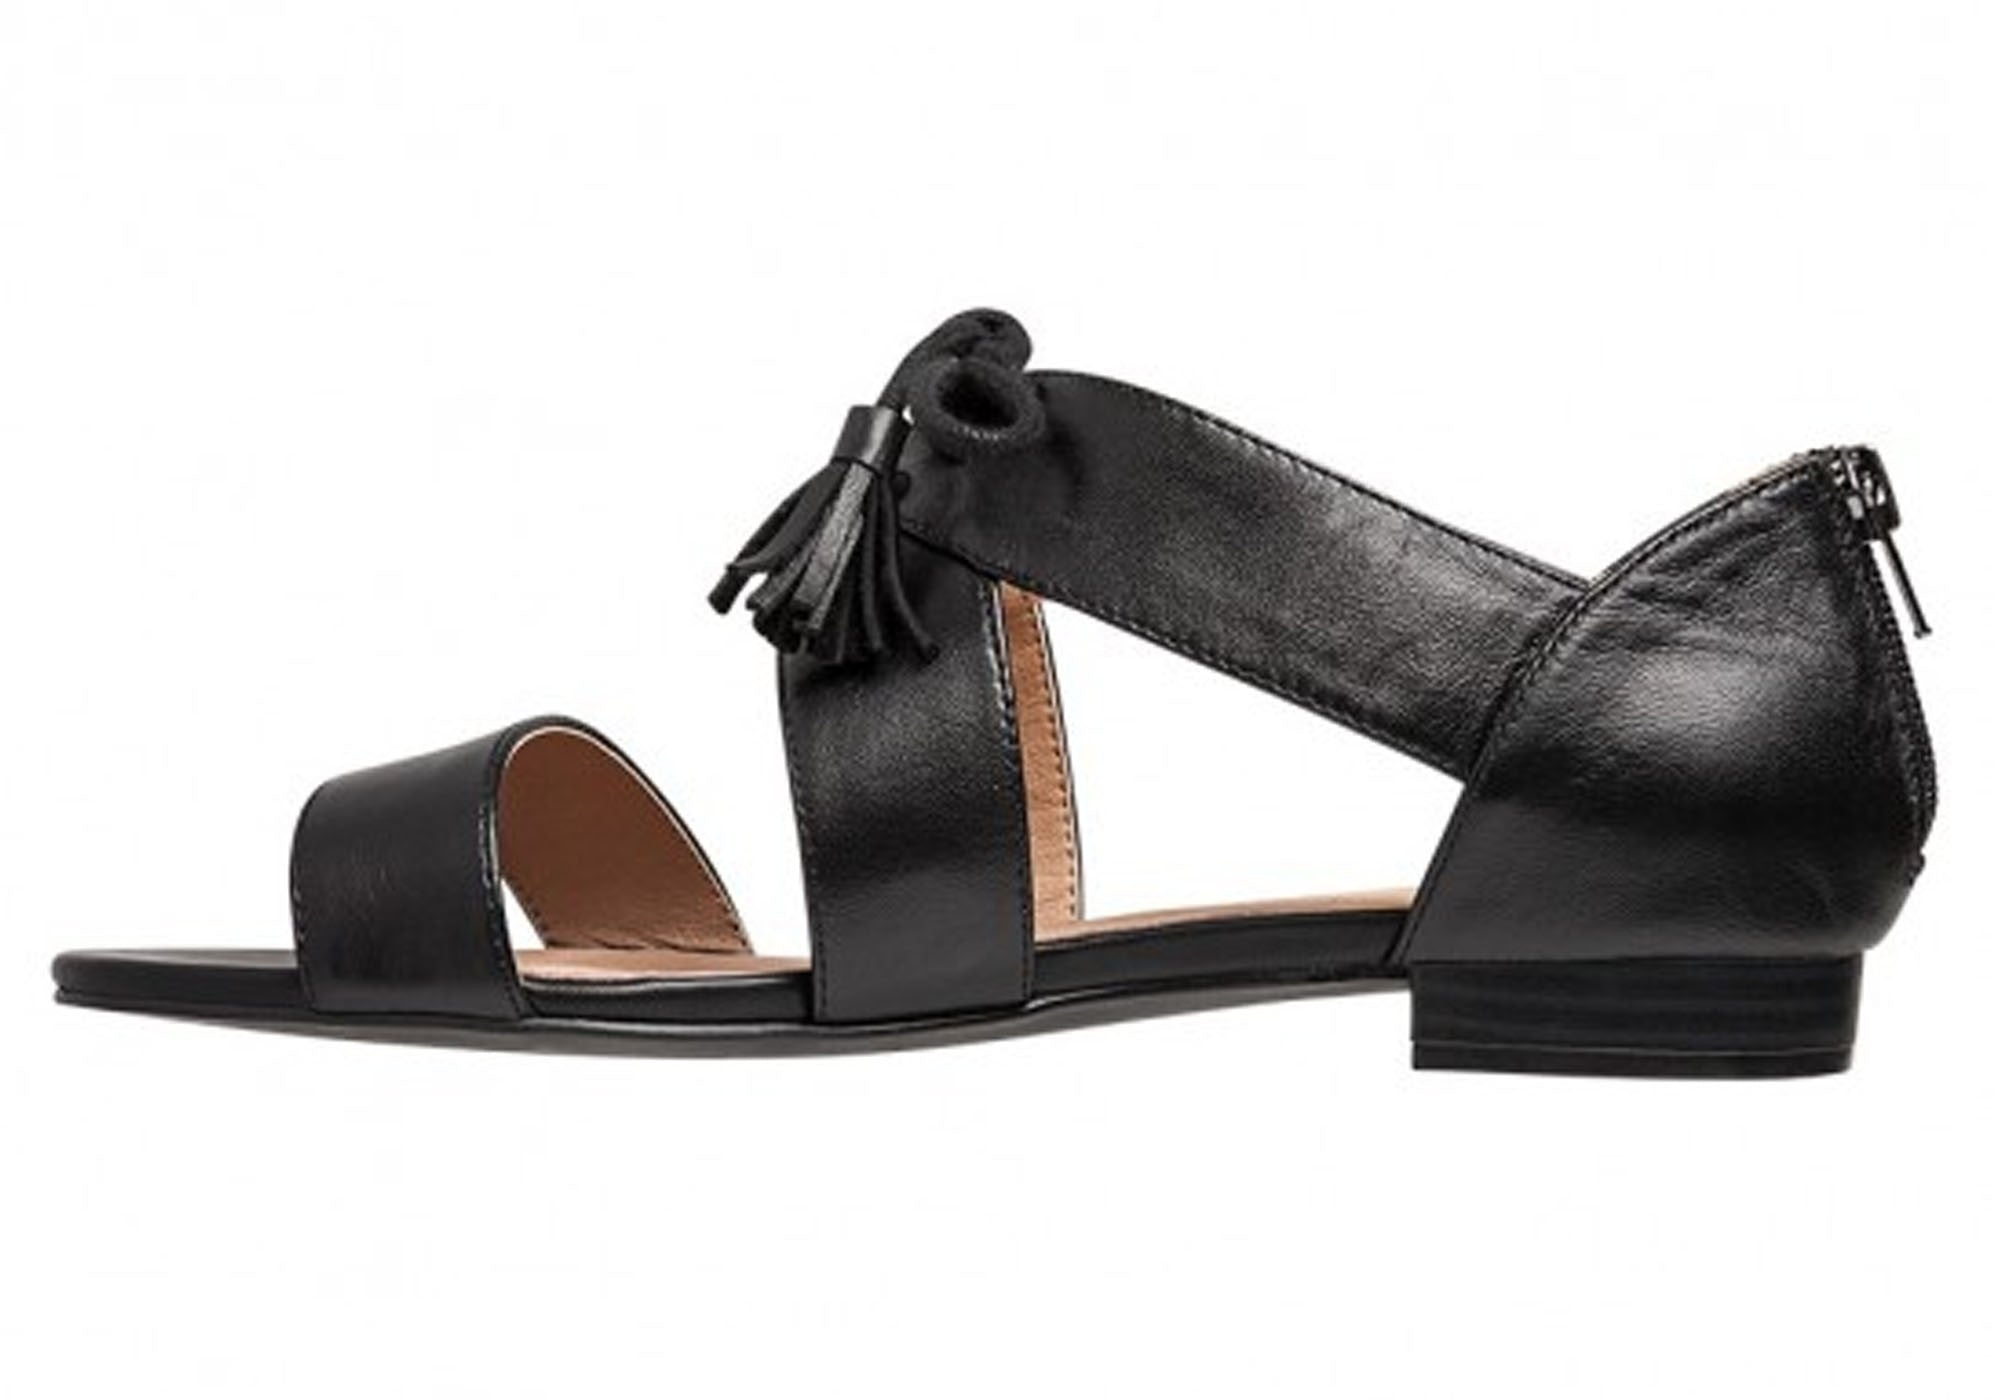 Hush Puppies Sienna Womens Leather Sandals